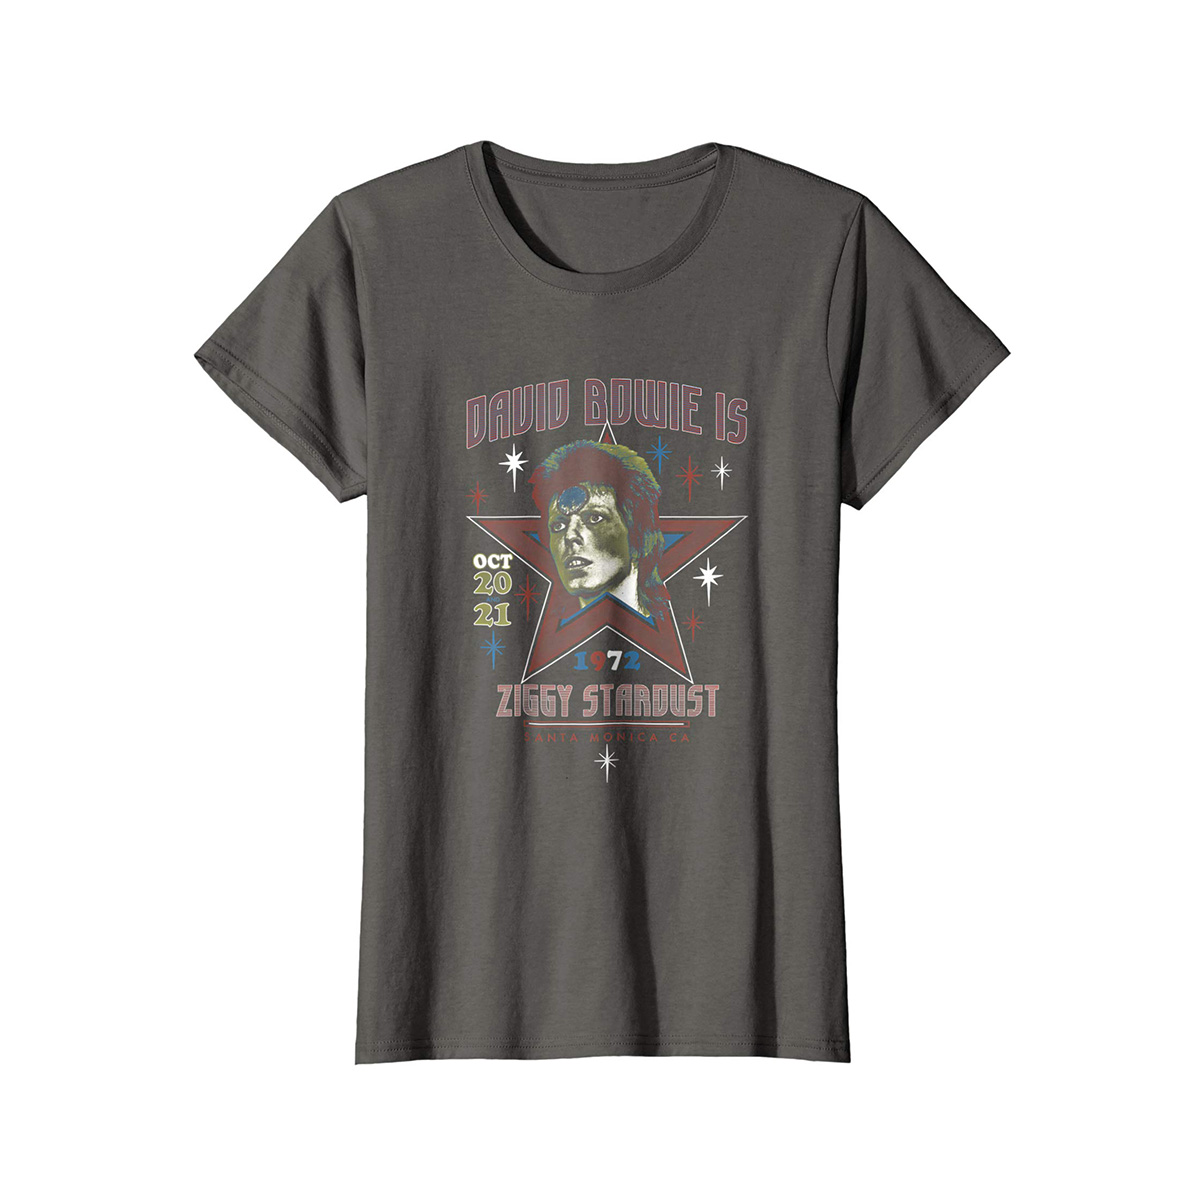 Women's David Bowie Is Ziggy Stardust T-Shirt